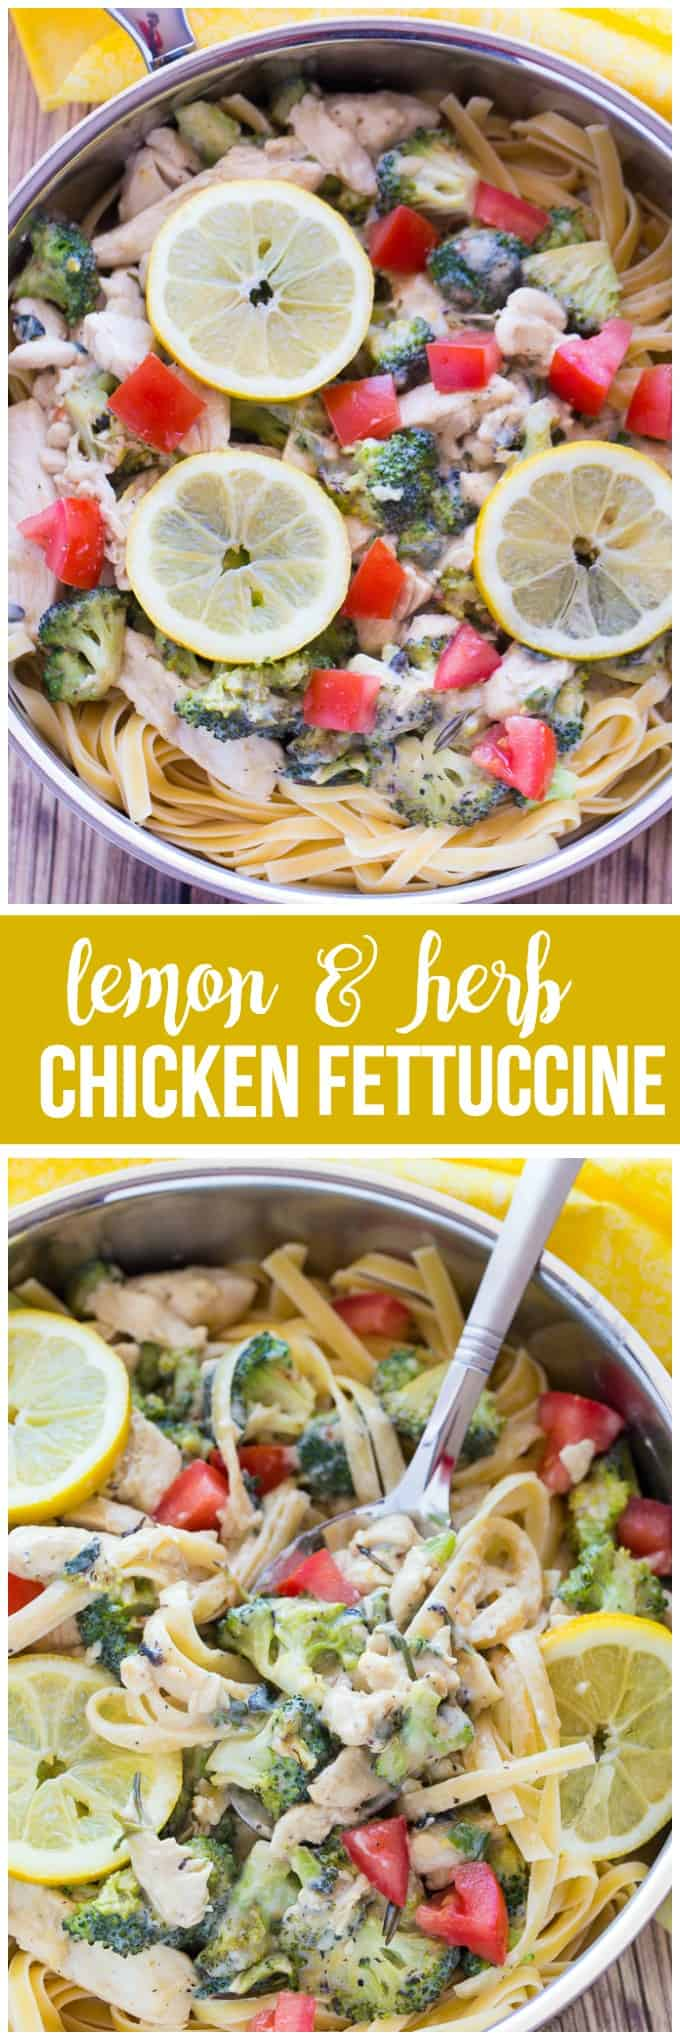 Lemon & Herb Chicken Fettuccine - Your family will love this fresh and healthy springtime meal! Fresh herbs, lemons and chicken in a creamy sauce are served over a bed of fettuccine. Delish!